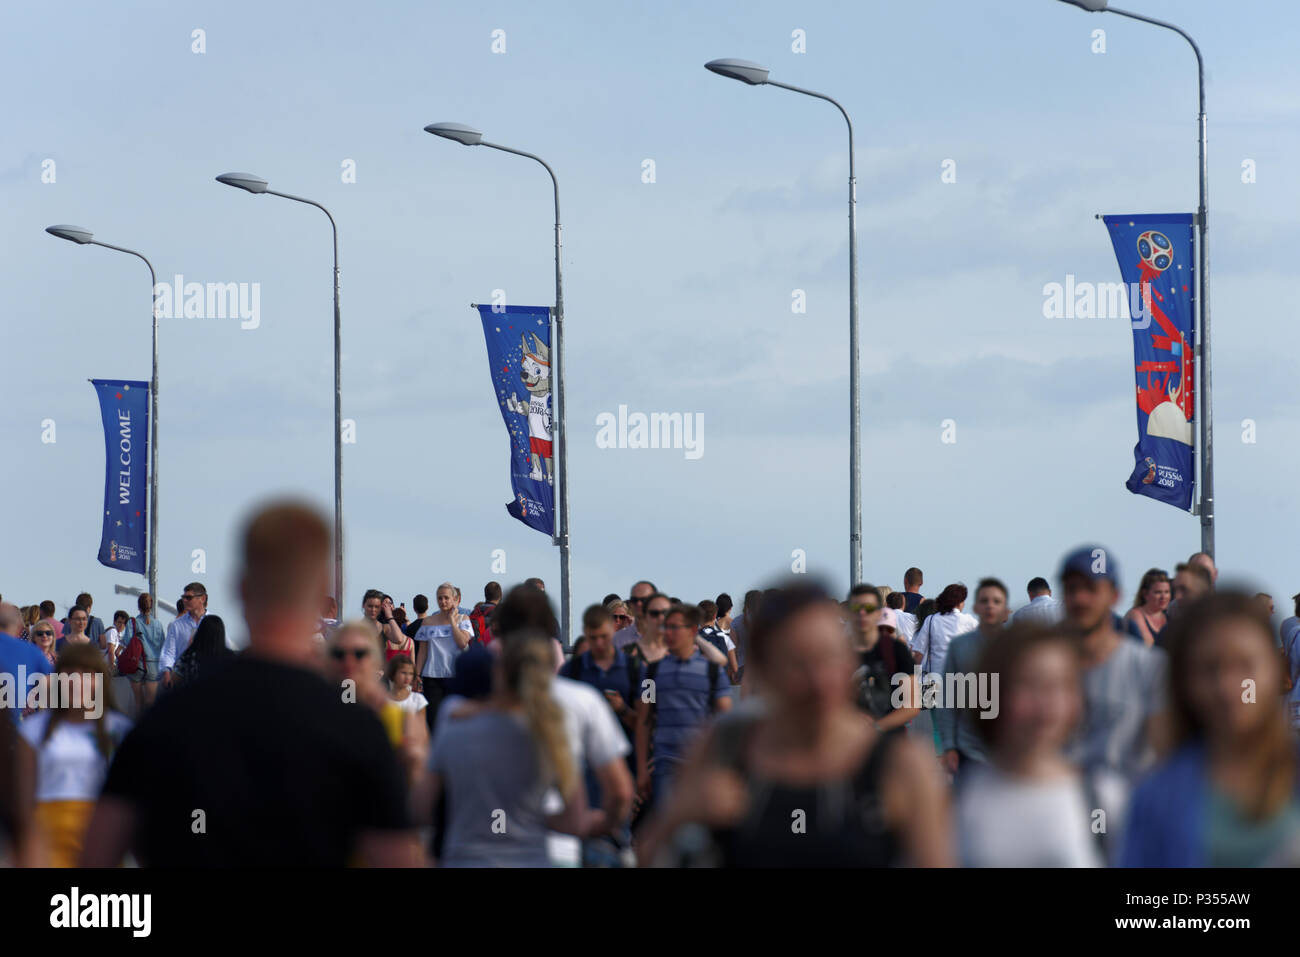 St. Petersburg, Russia - June 16, 2018: People on Yachtenny bridge under FIFA World Cup Russia 2018 banners with Zabivaka mascot. Saint Petersburg hos - Stock Image